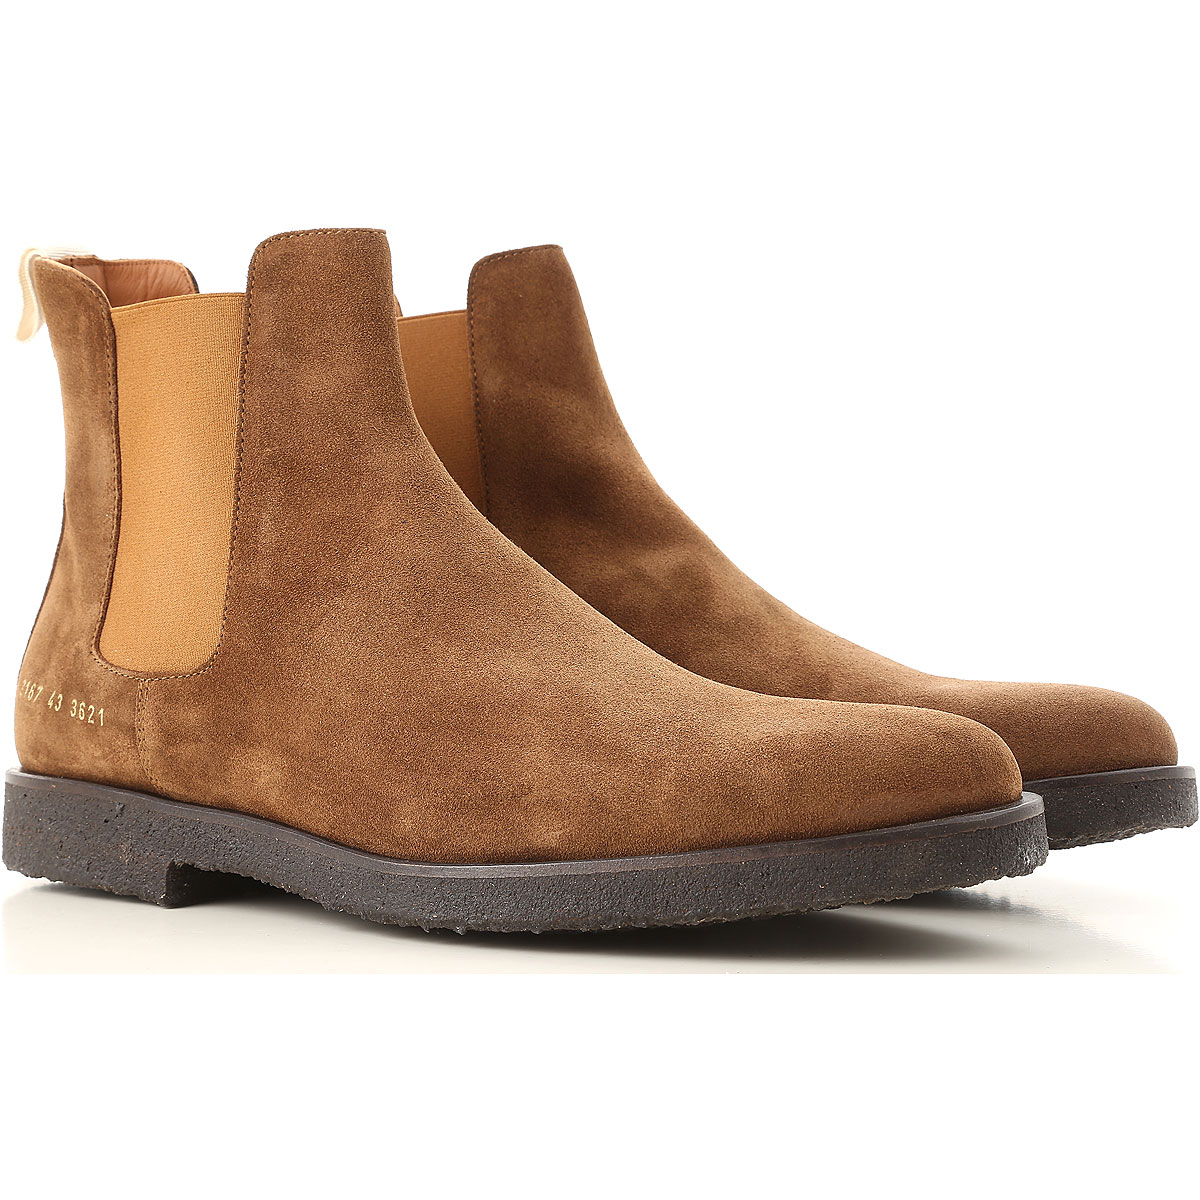 Image of Common Projects Boots for Men, Booties, Tobacco, suede, 2017, 10.5 6.5 7.5 8 9